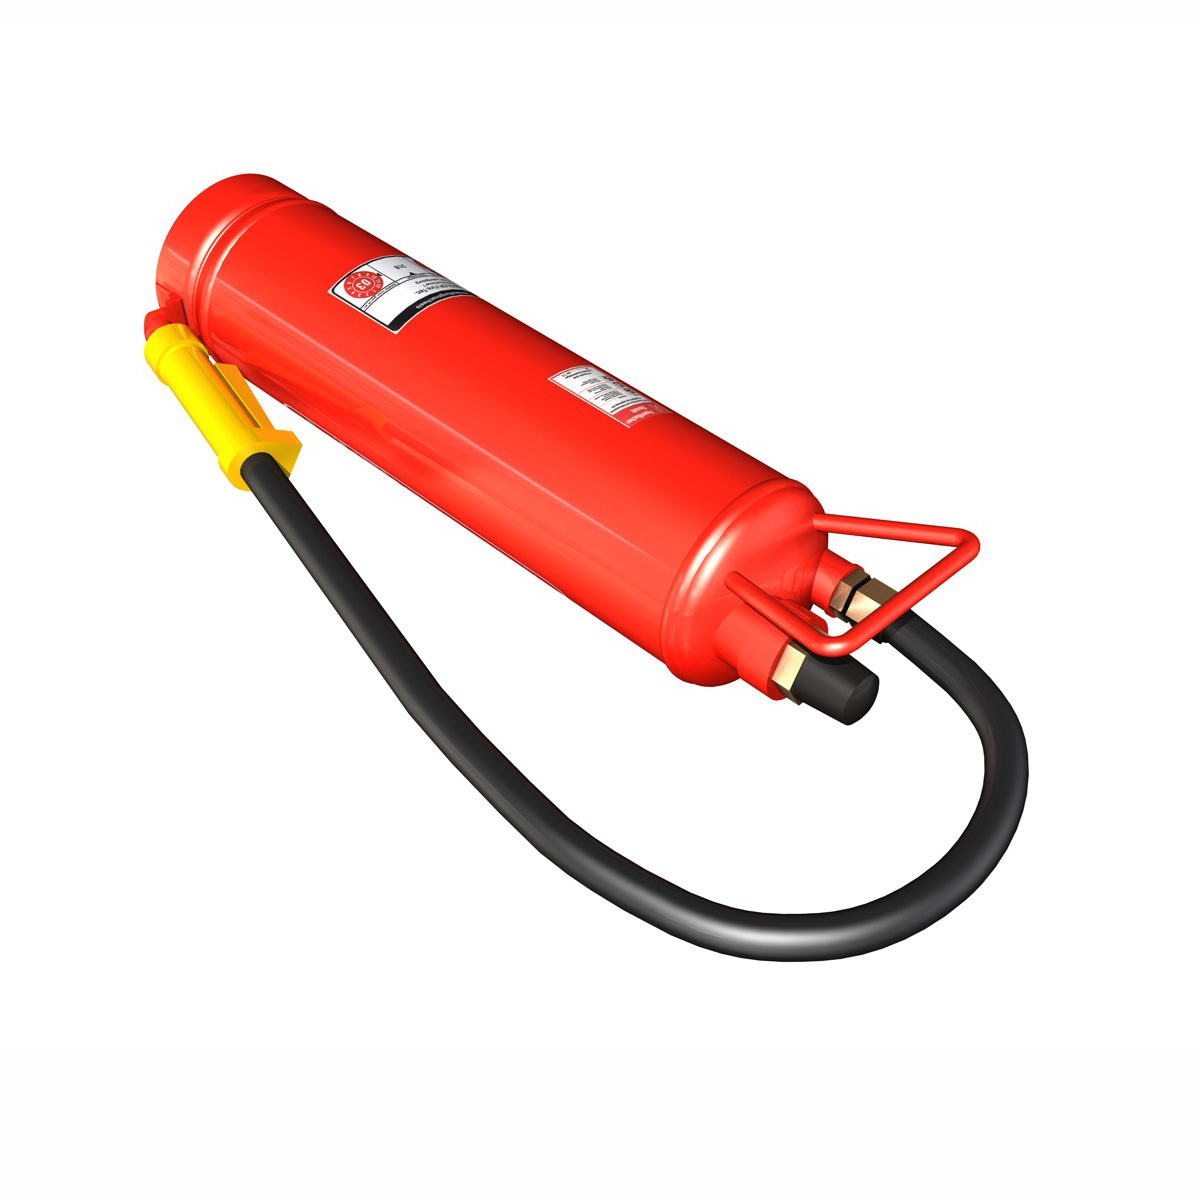 fire extinguisher with vehicle mounting 3d model 3ds fbx c4d lwo obj 188496